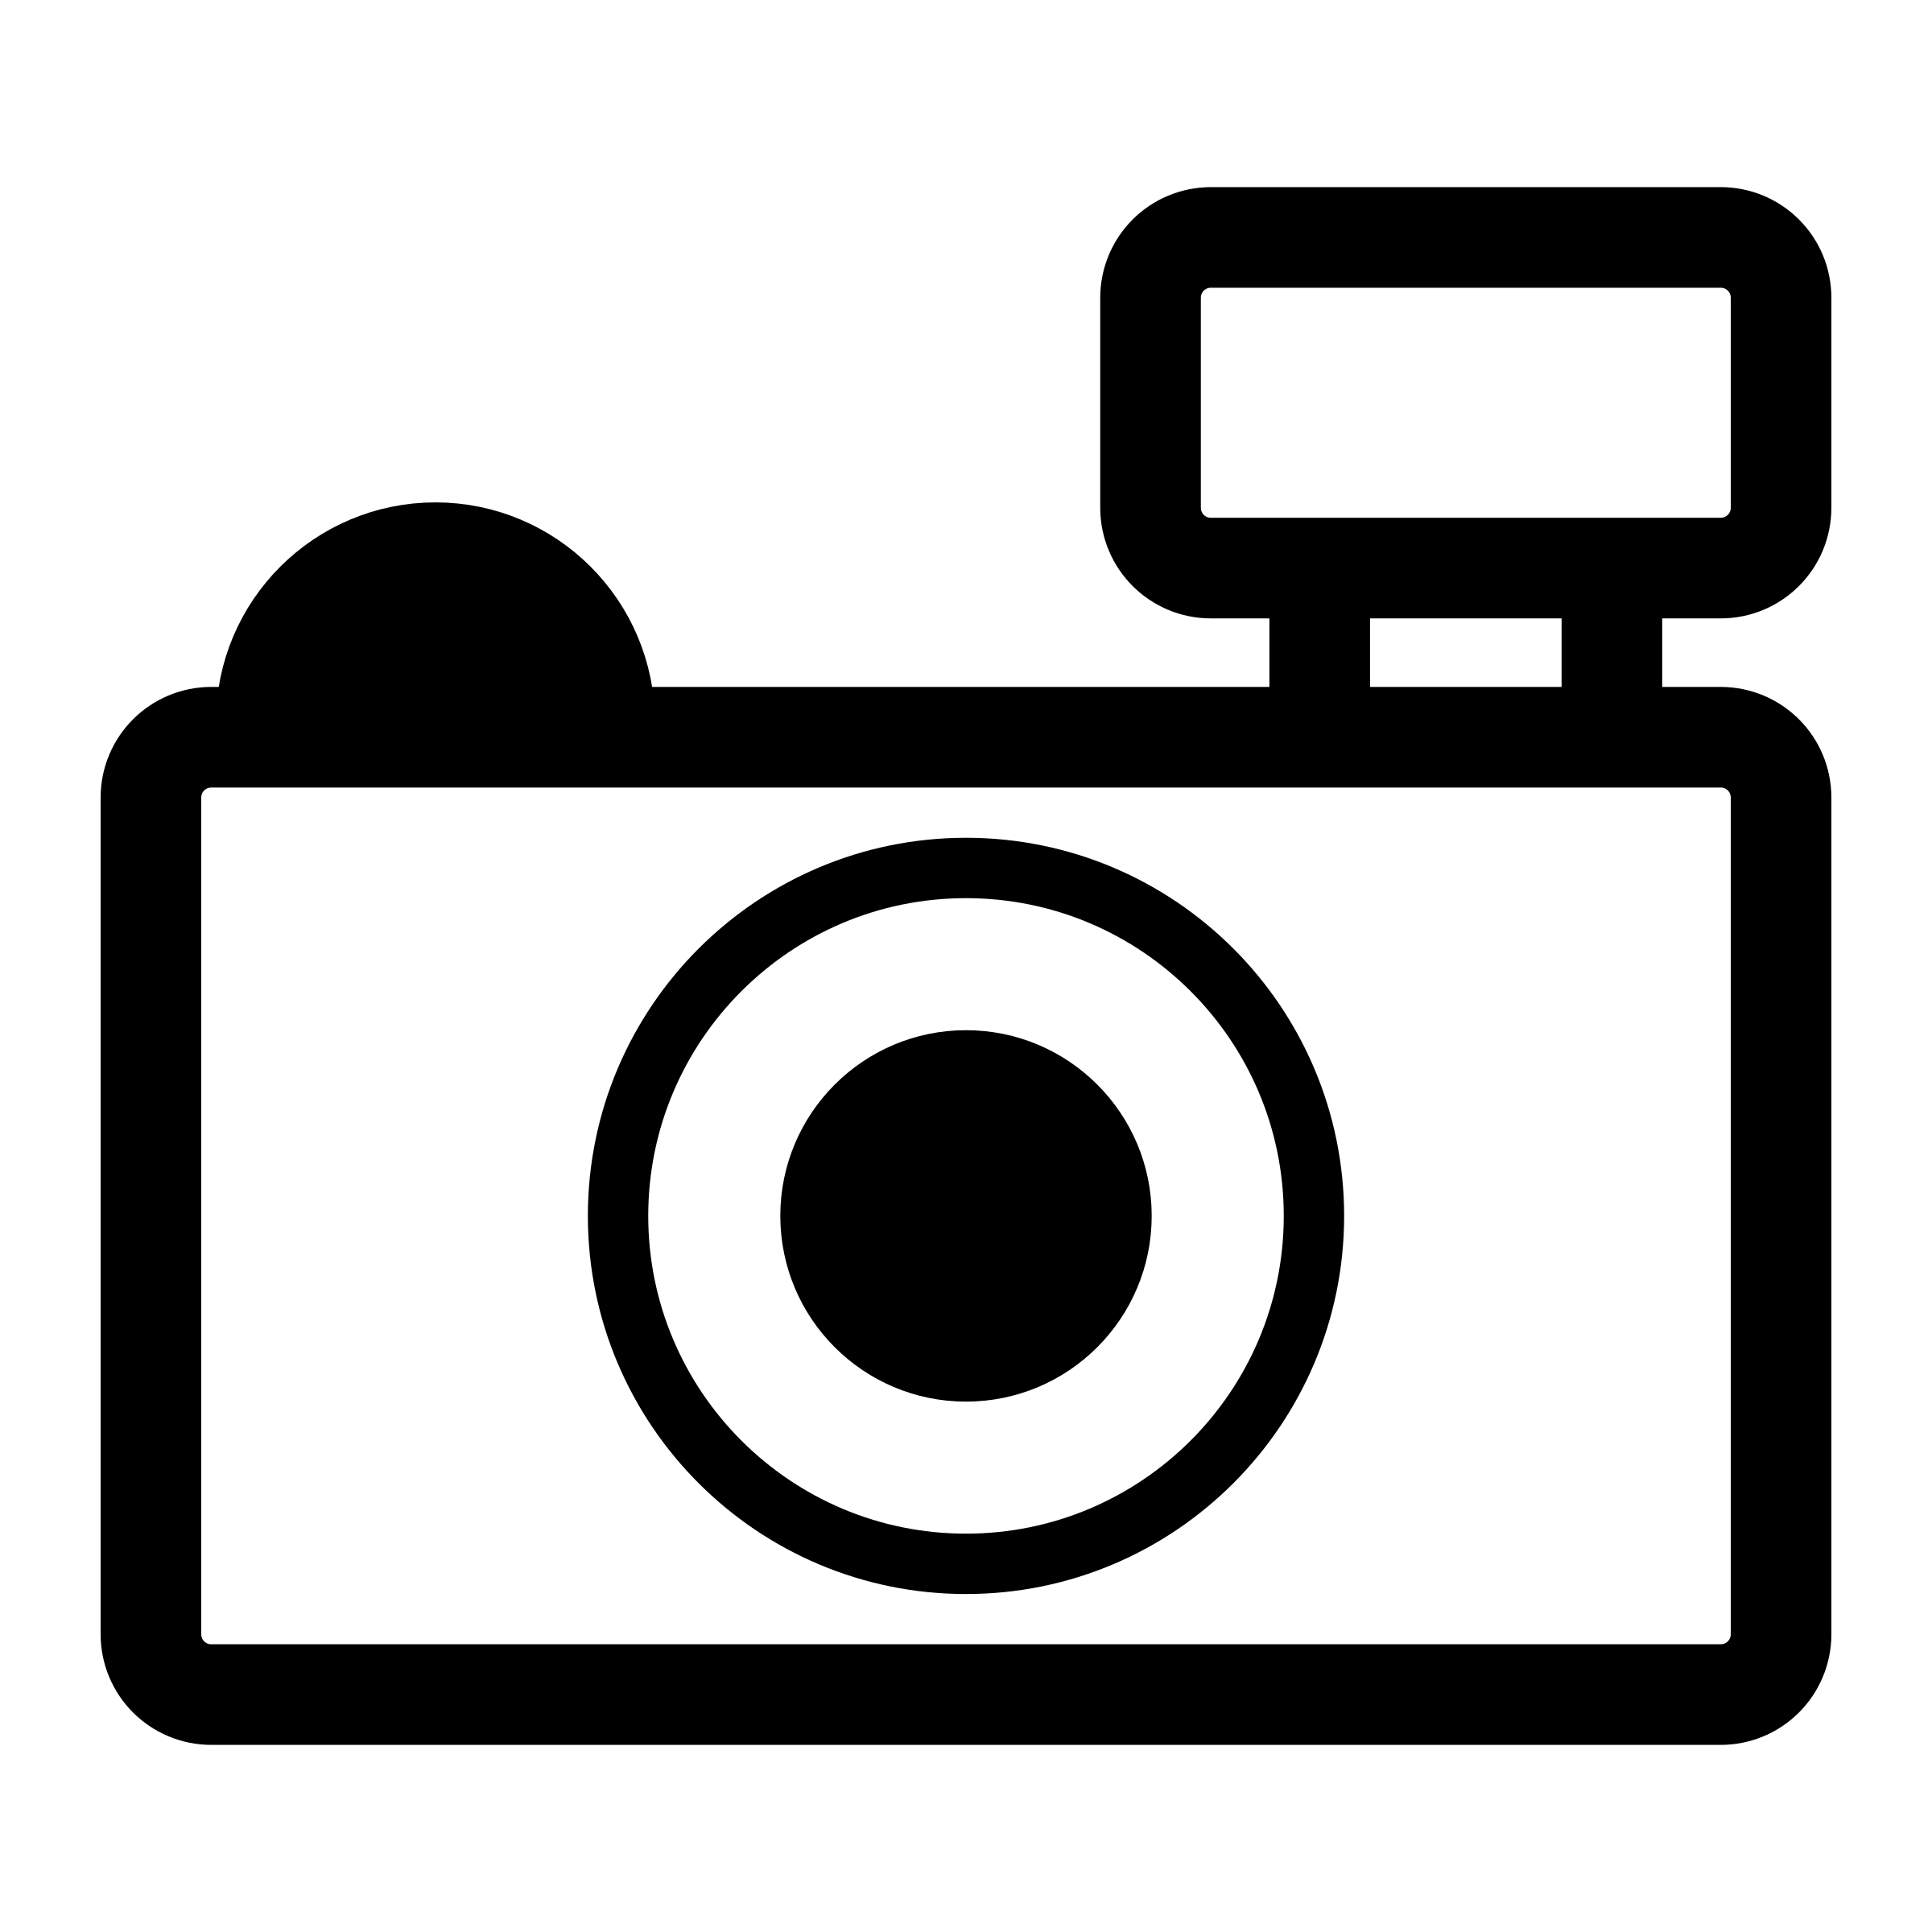 Camera clip art black and white. Clipart panda free images